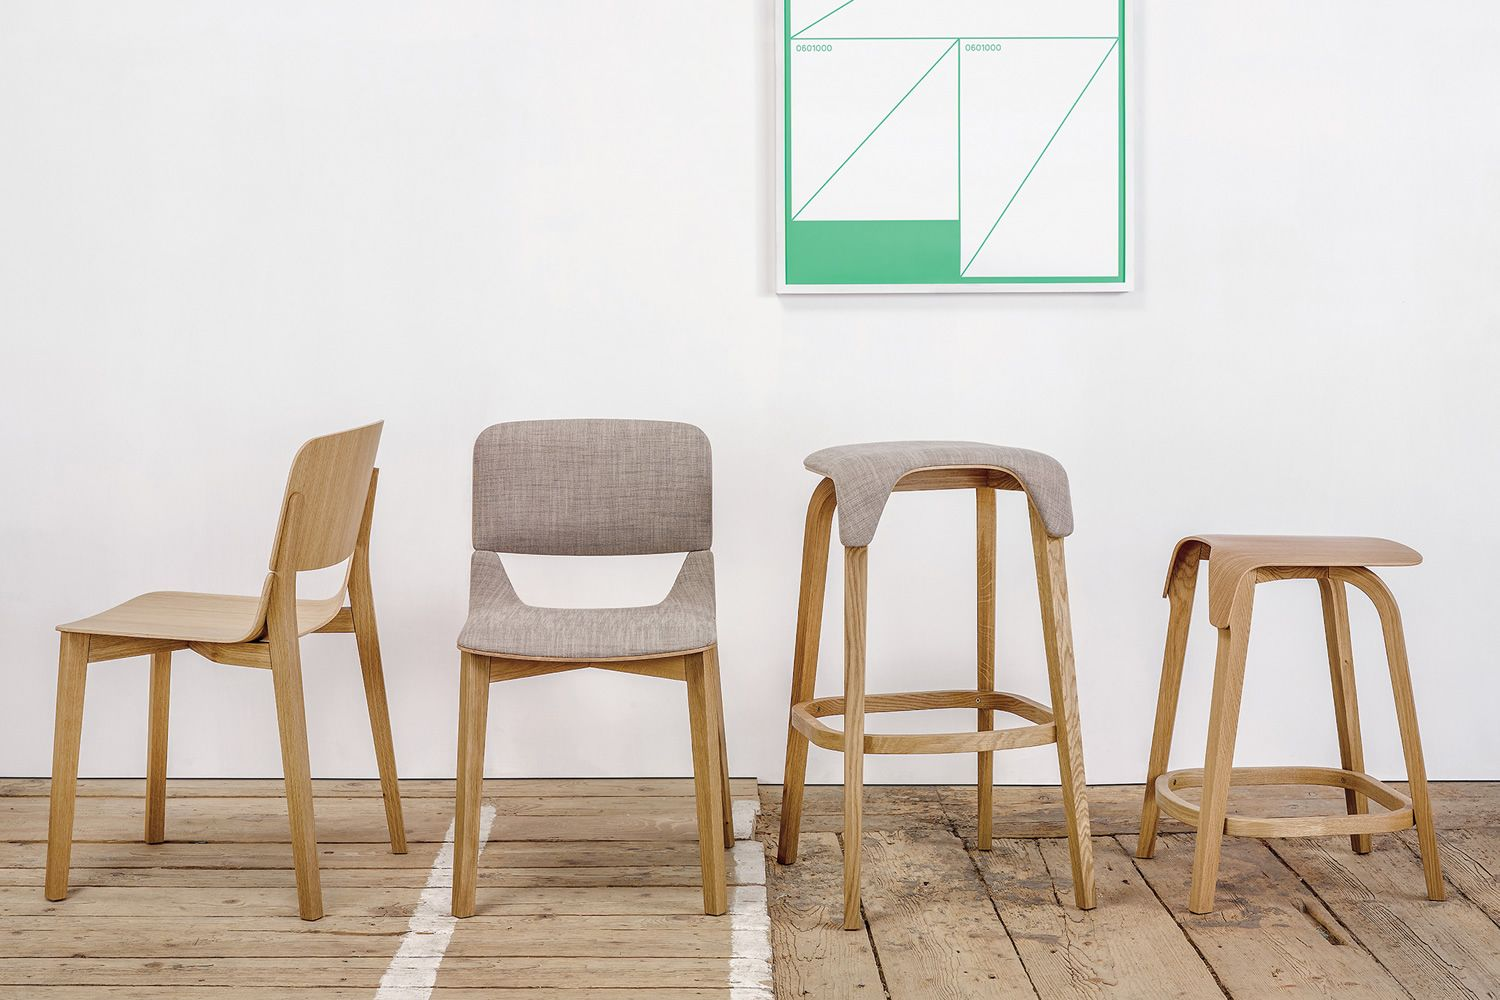 Chairs and tables: Leaf stool